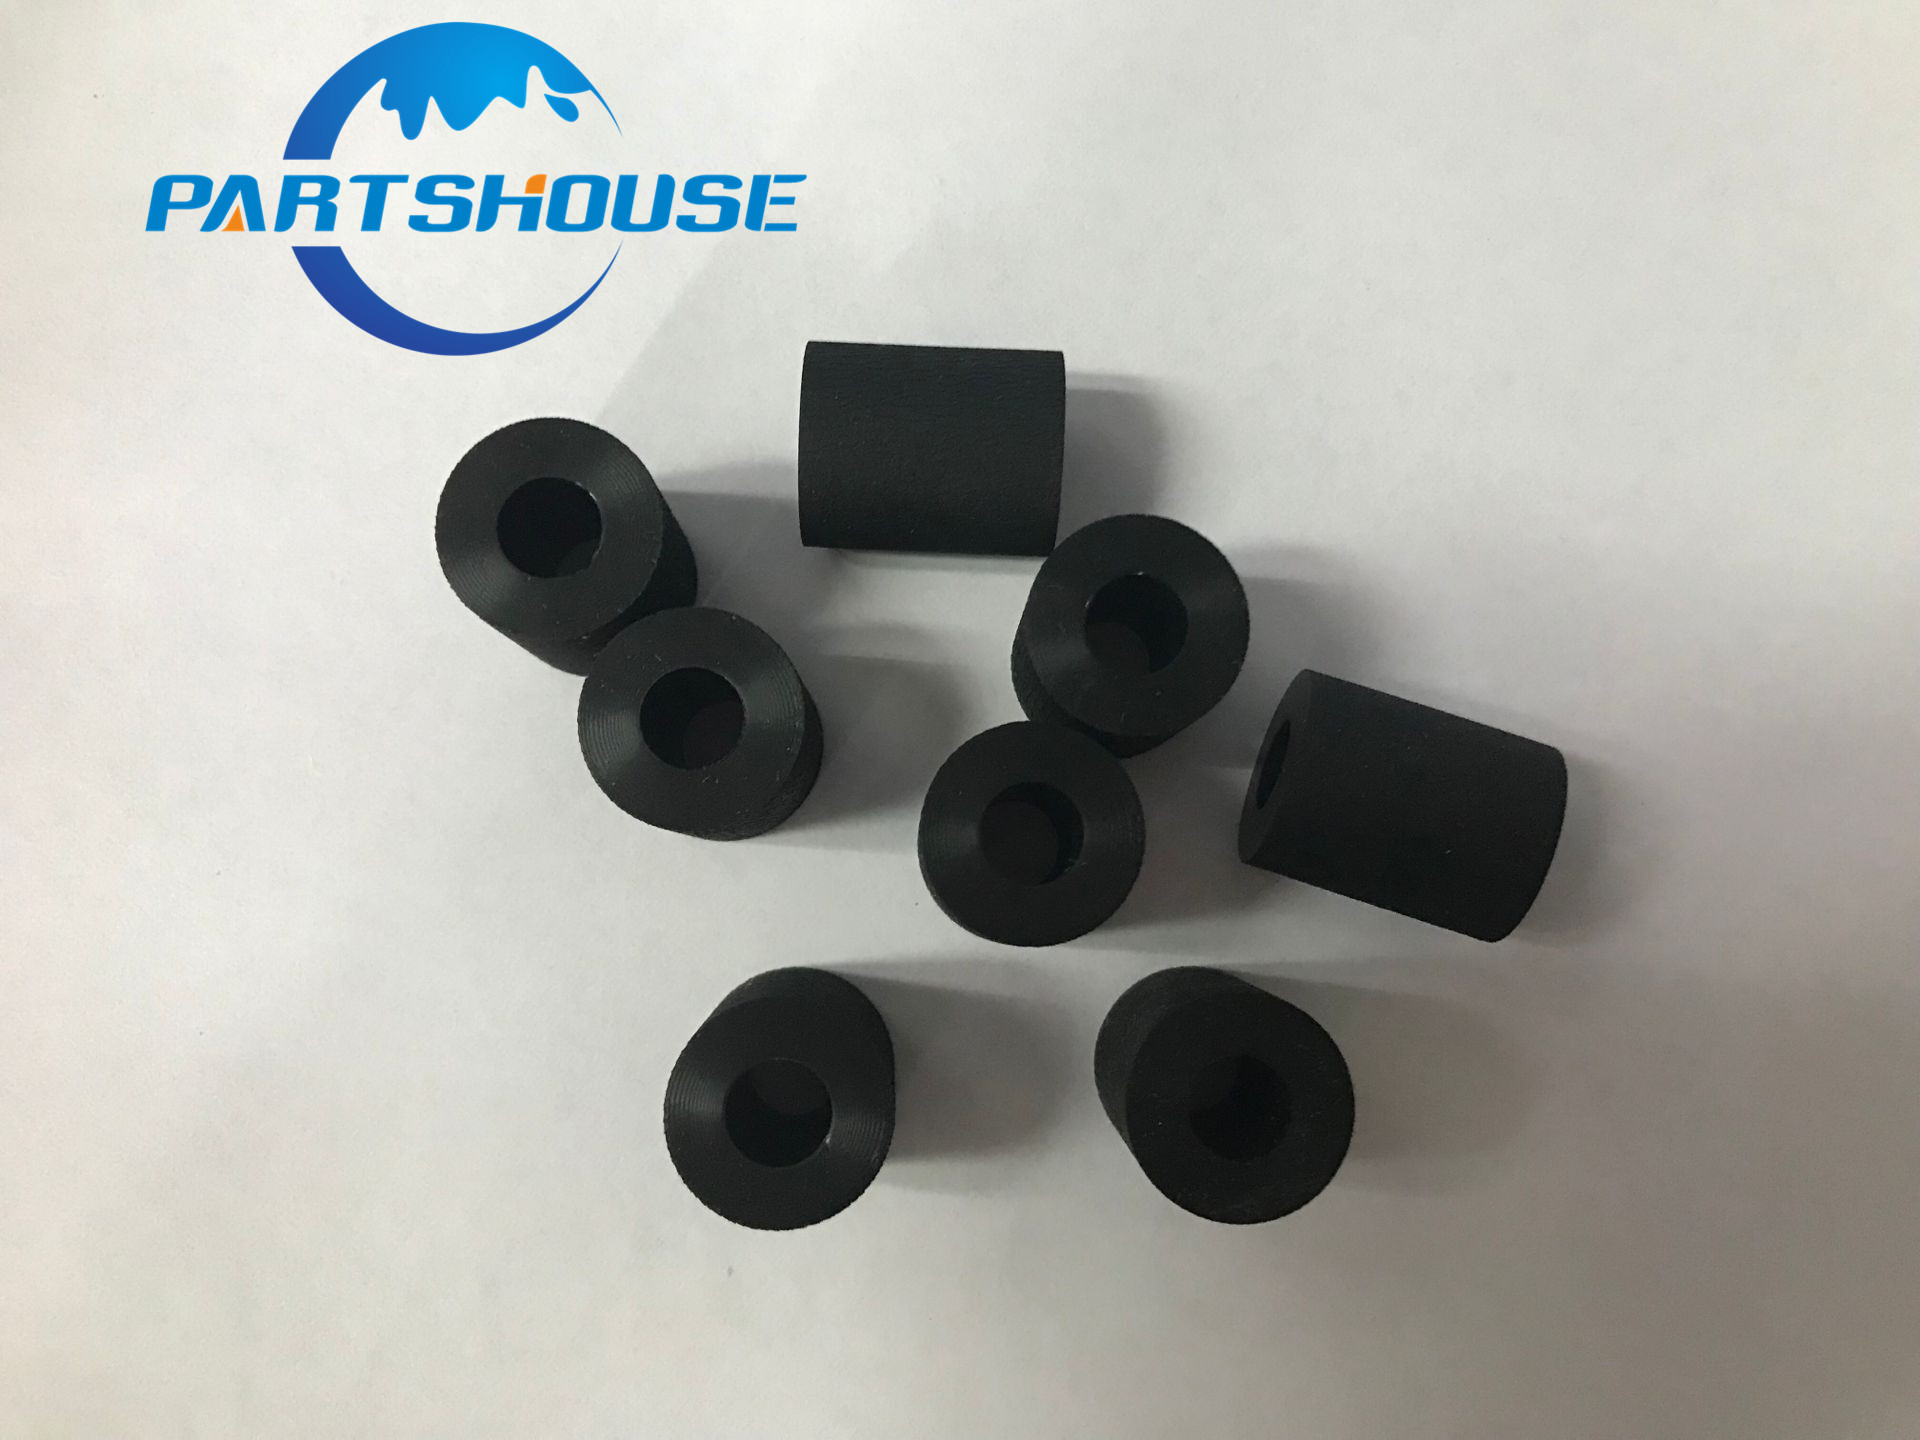 20Pcs Pick up Roller tire 2BR06520 2F906240 2F906230 for <font><b>Kyocera</b></font> FS1028 1035 1100 1120 <font><b>1128</b></font> 1300 1320 2000 3900 Pickup rubber image